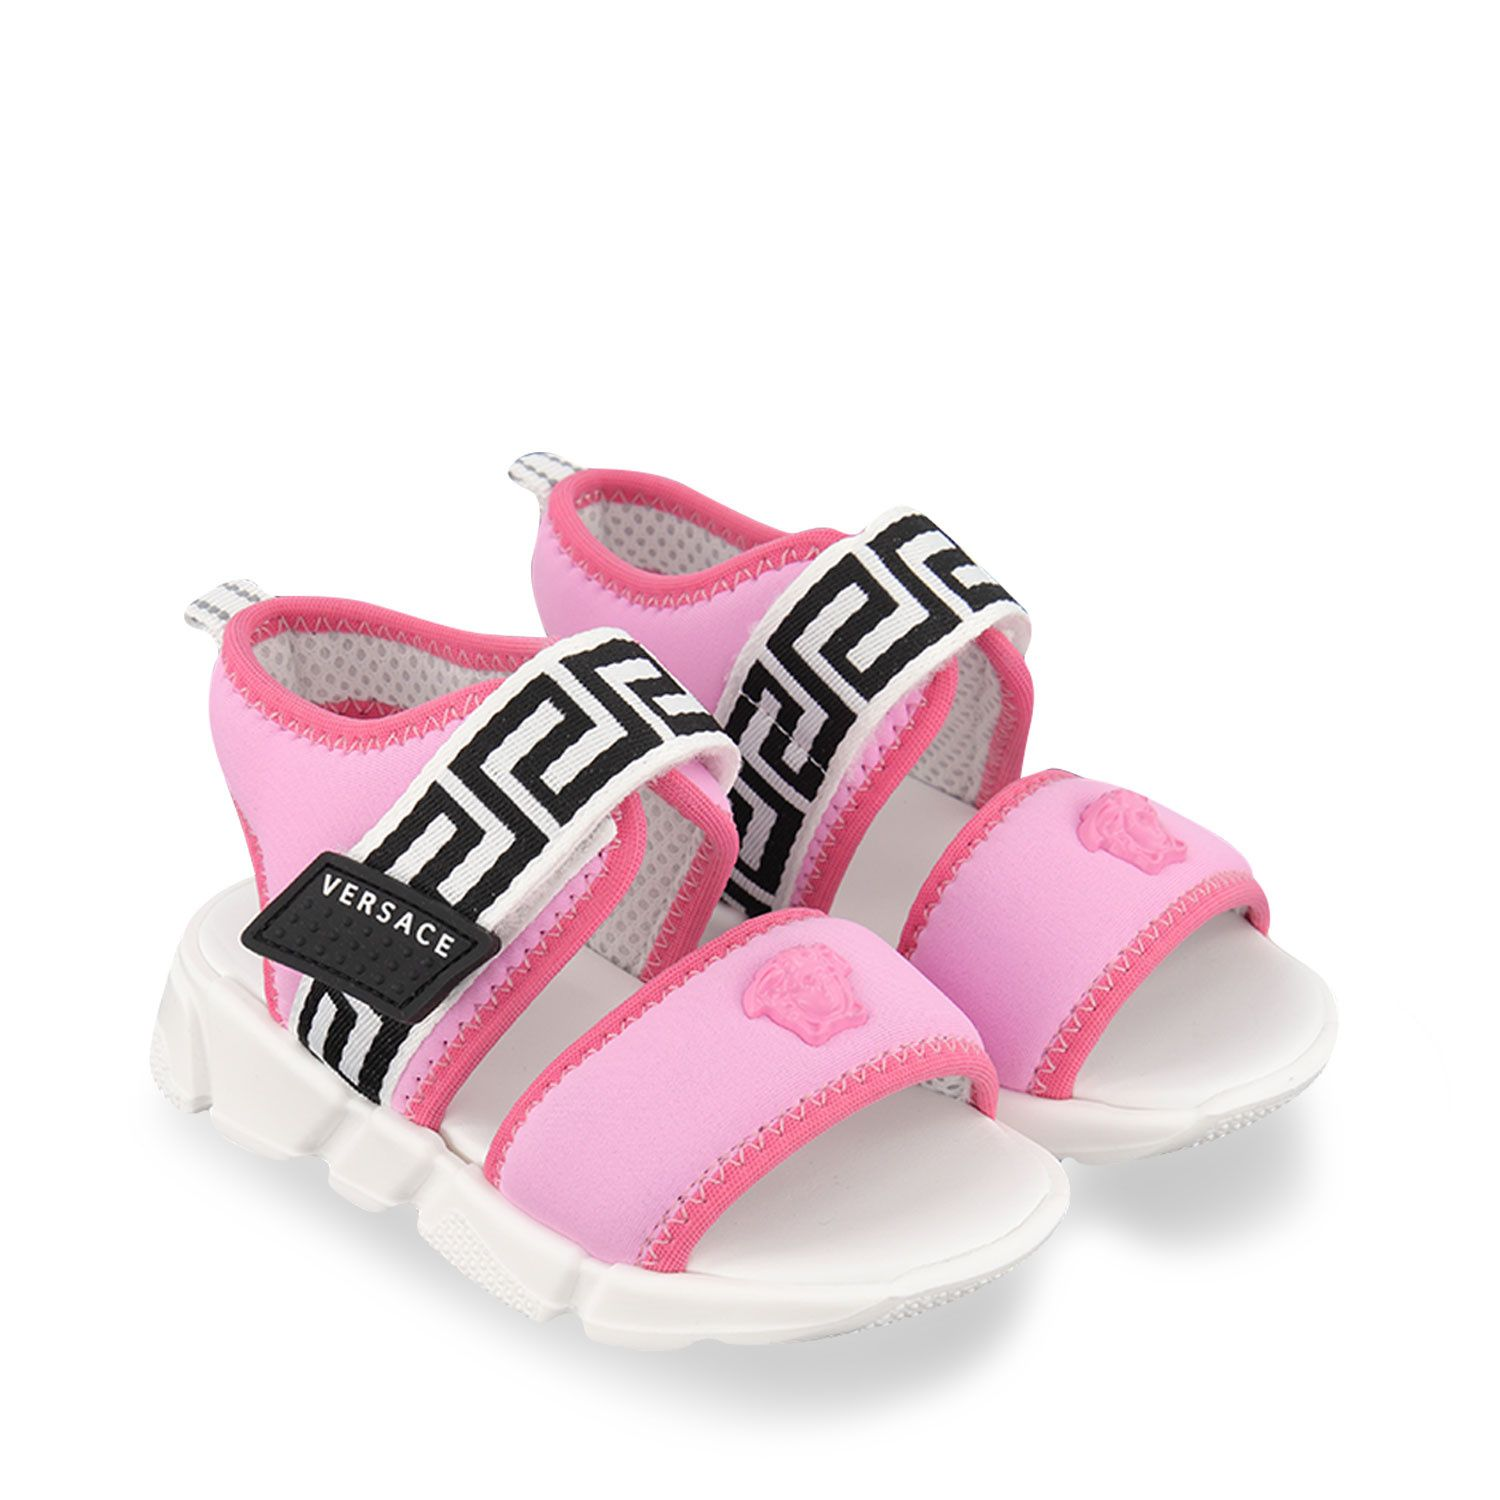 Picture of Versace 1000246 kids sandals pink